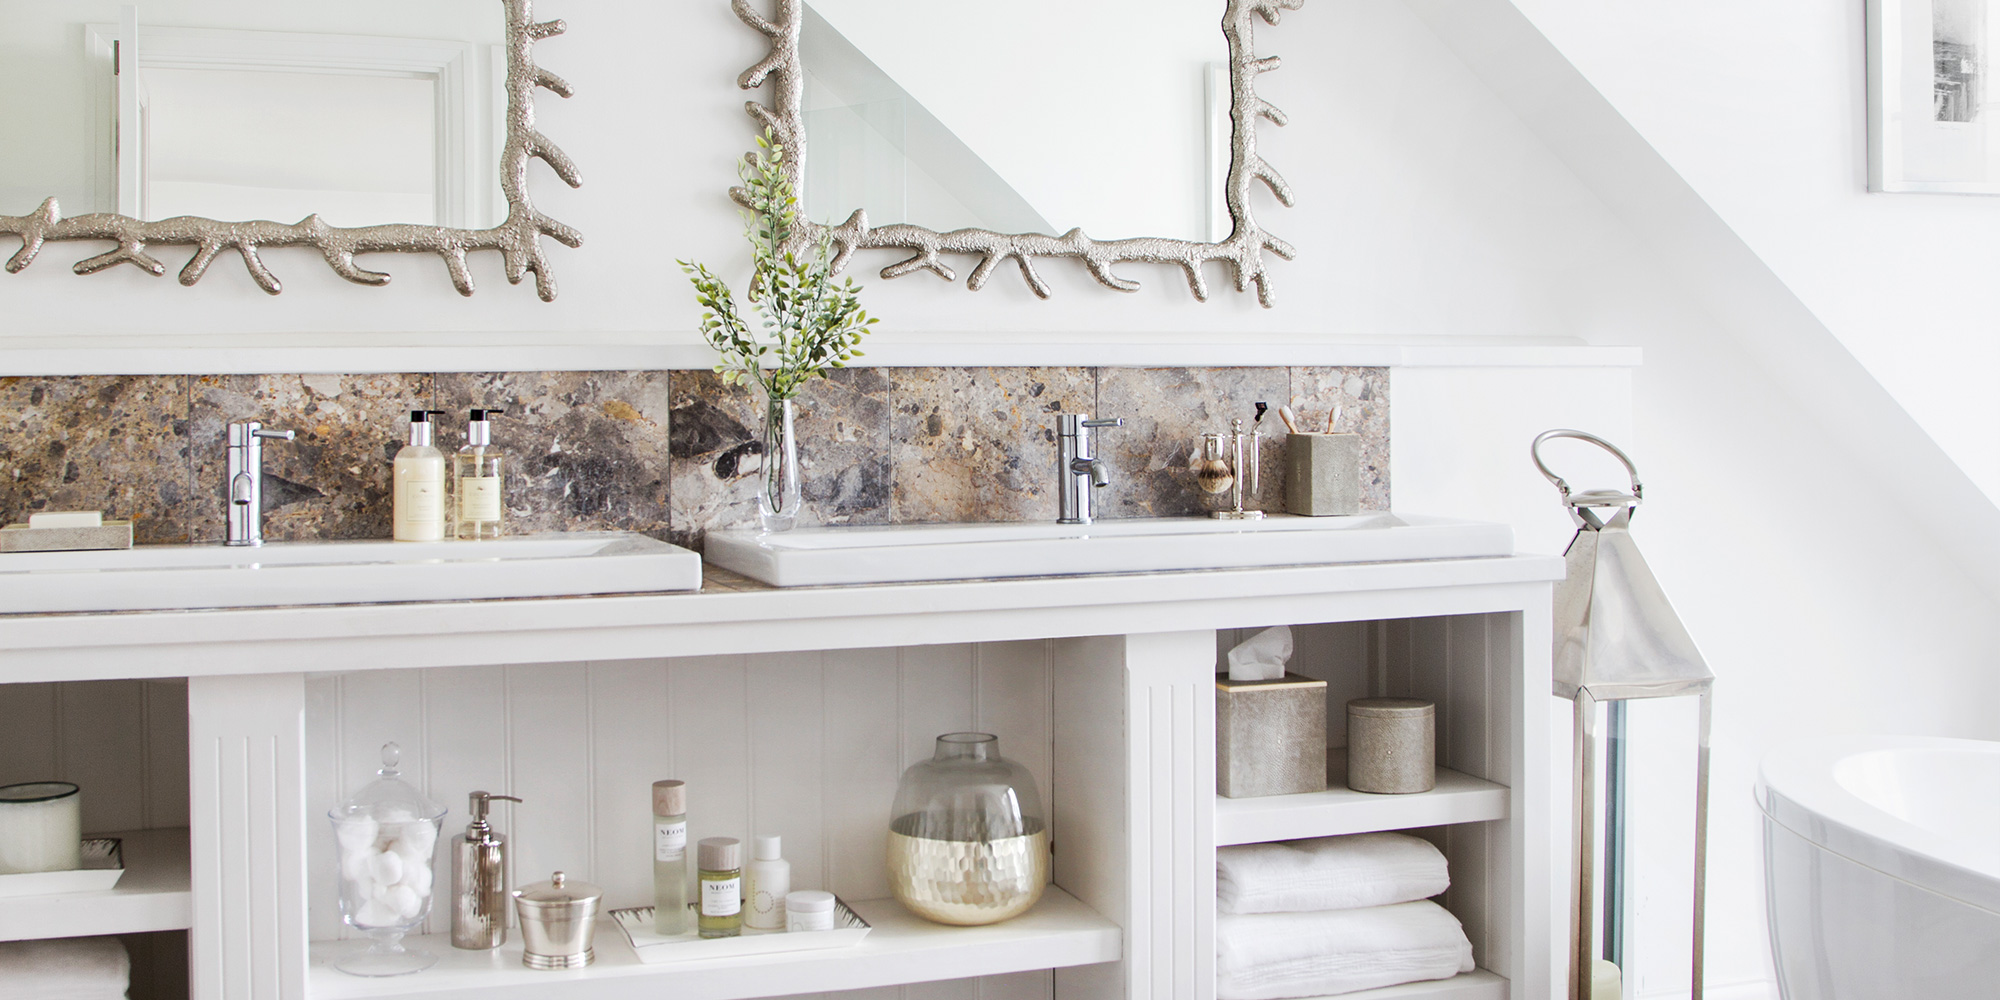 Bathroom Ideas: The Ultimate Guide to Your Bathroom Restyle - The LuxPad